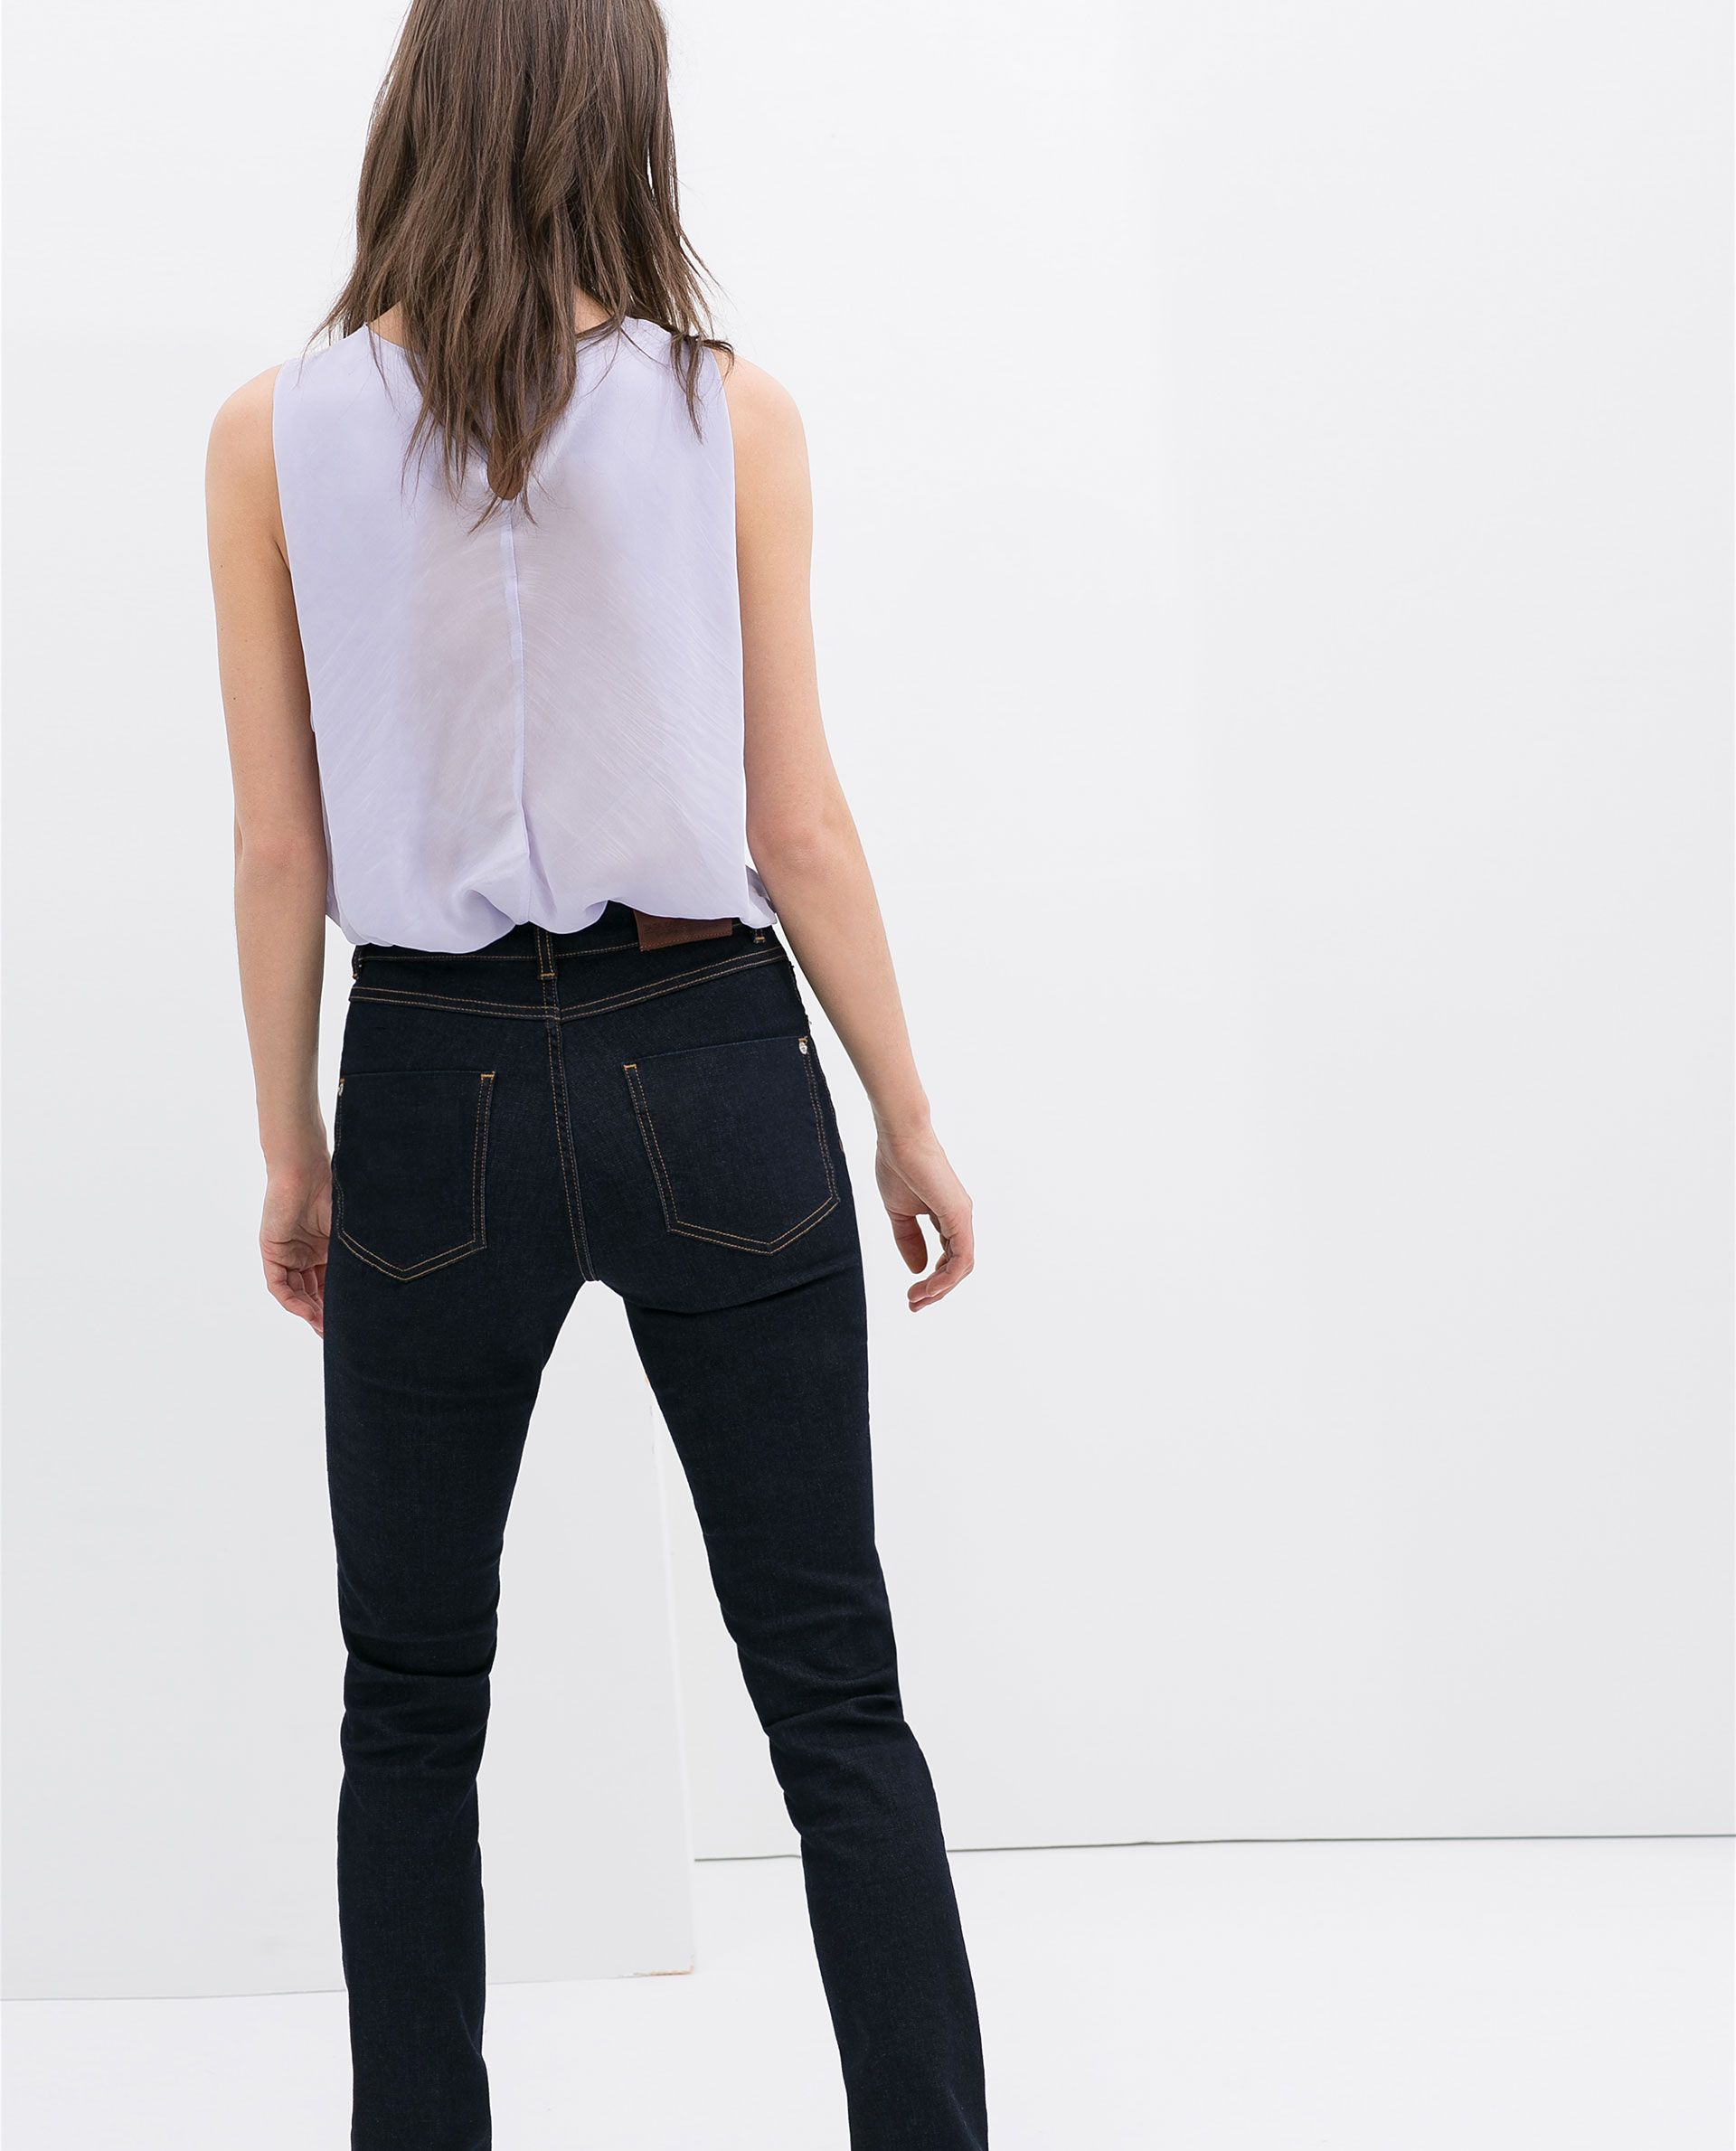 9417c0245e Image 4 of SKINNY JEANS from Zara | Clothing/Accessories/Shoes ...